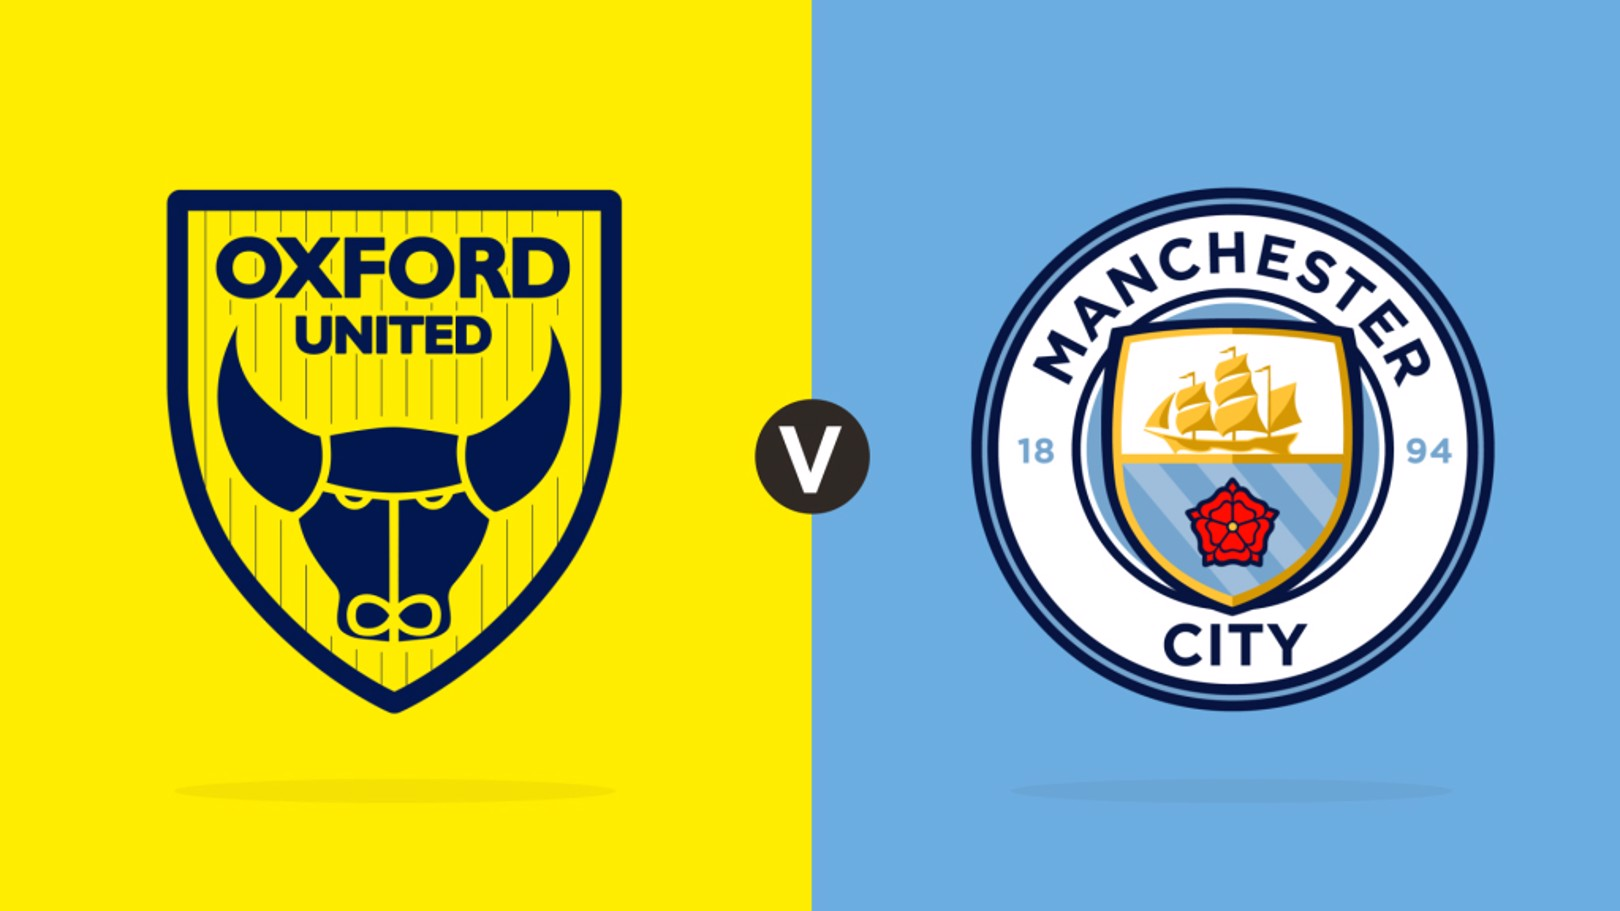 Oxford United v Man City: Match and player stats